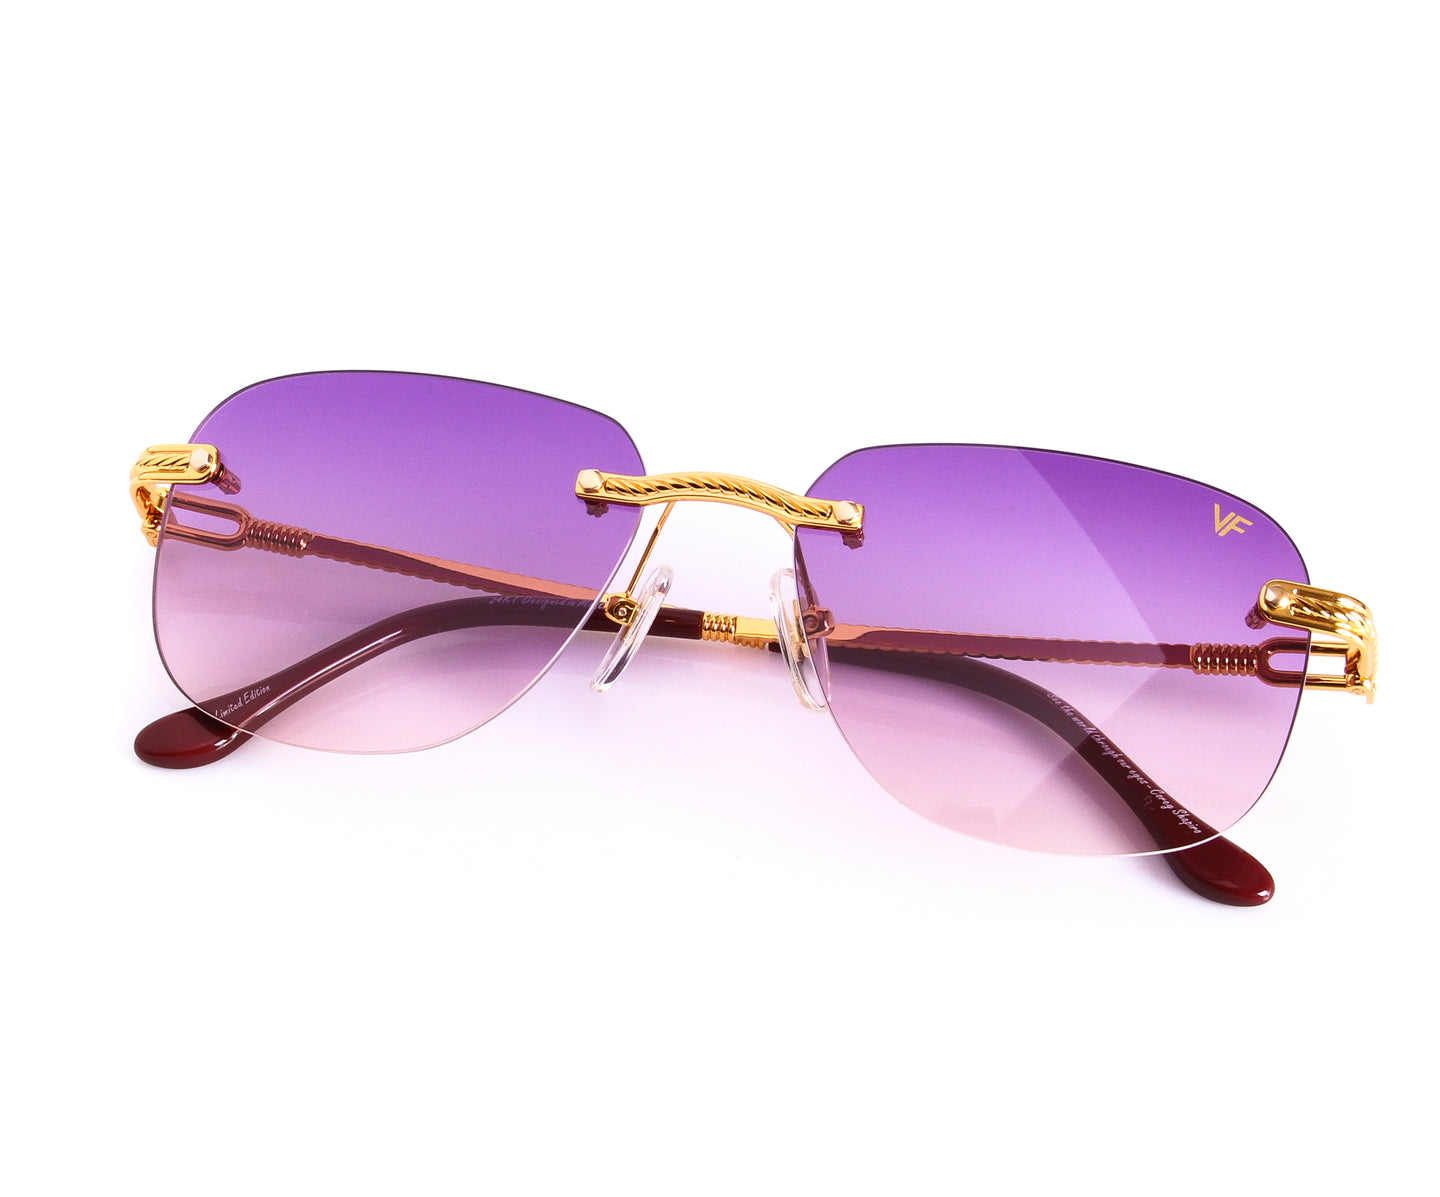 VF Hustler Drill Mount 24KT Gold (Purple), VF Drill Mount , glasses frames, eyeglasses online, eyeglass frames, mens glasses, womens glasses, buy glasses online, designer eyeglasses, vintage sunglasses, retro sunglasses, vintage glasses, sunglass, eyeglass, glasses, lens, vintage frames company, vf